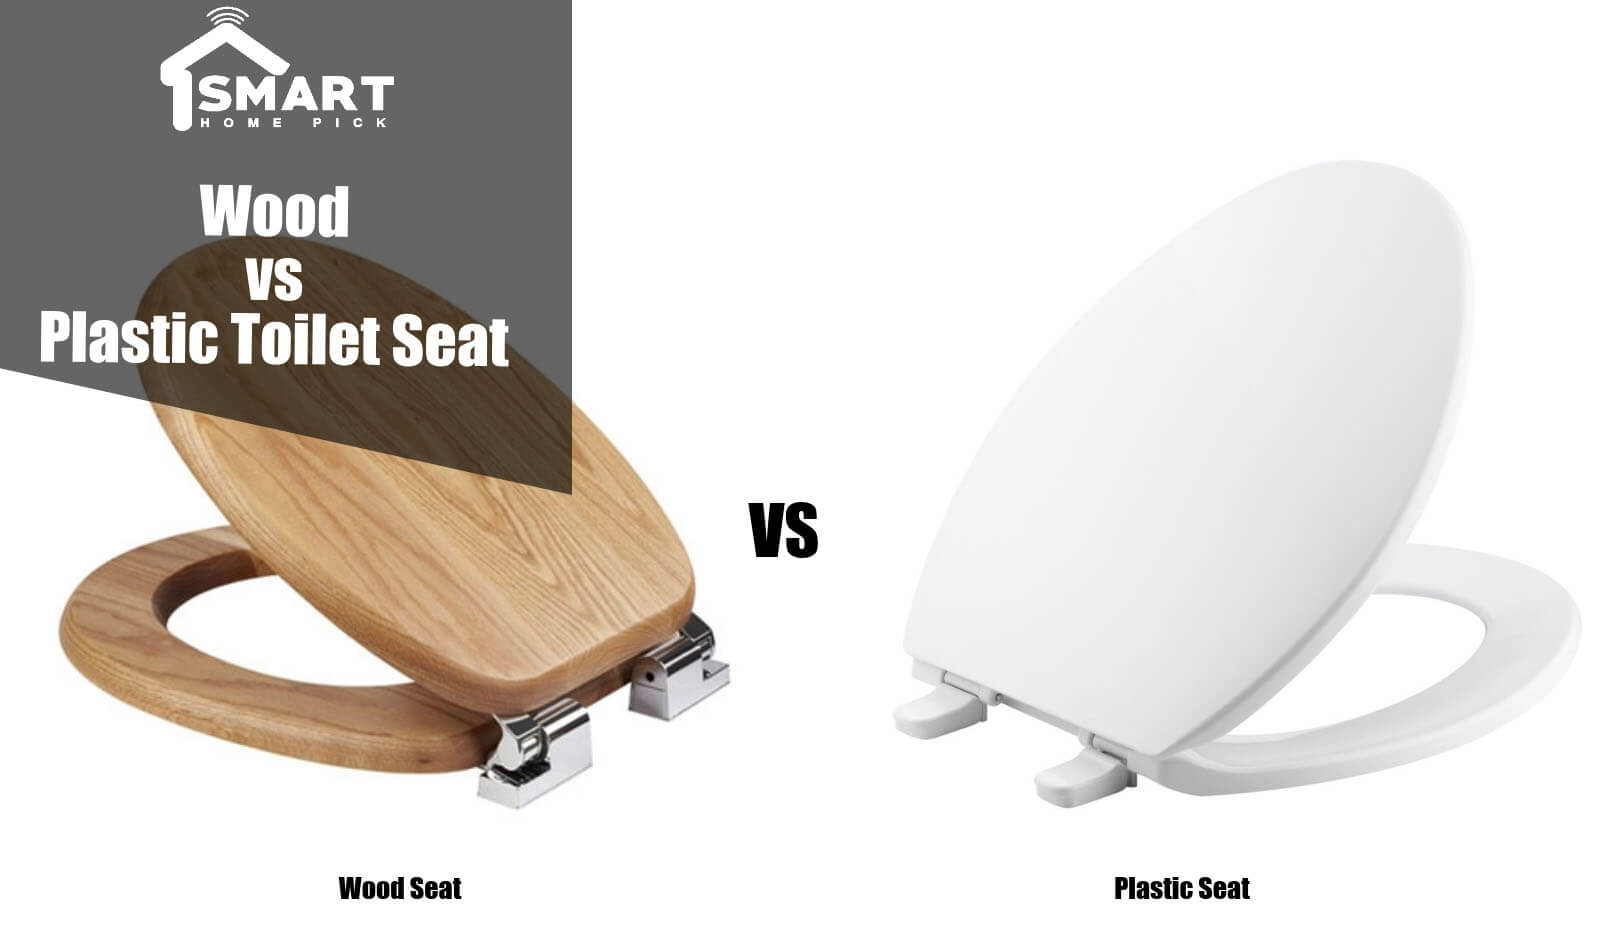 Wood Vs Plastic Toilet Seat What Material Makes The Seat Best